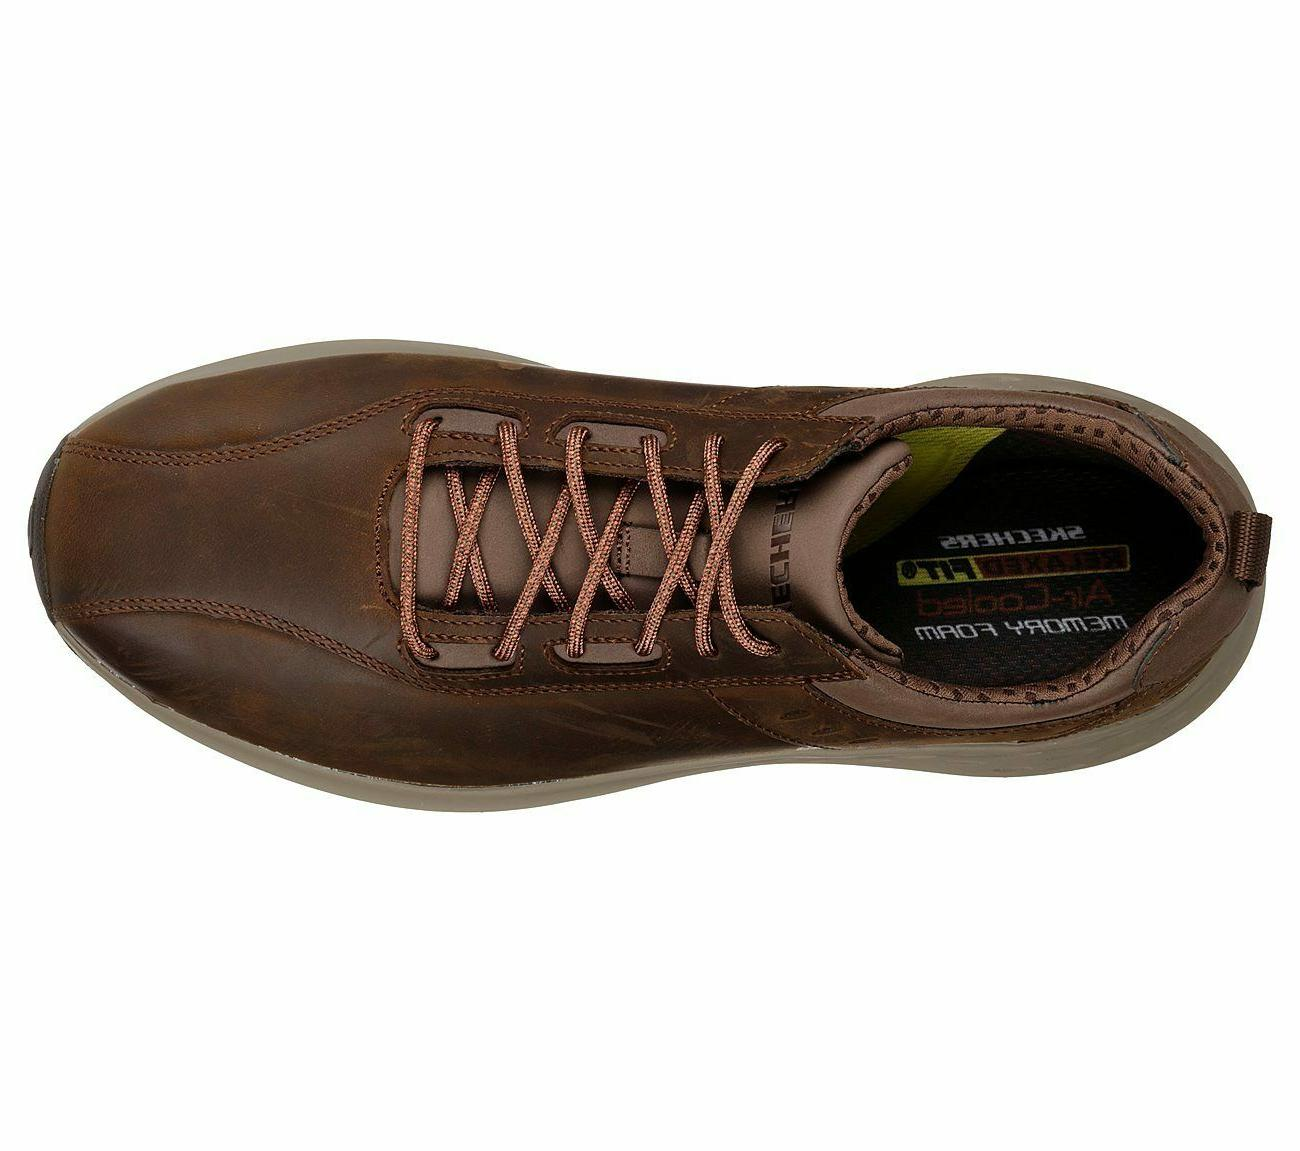 Skechers Memory Sporty Casual Comfort Leather Oxford